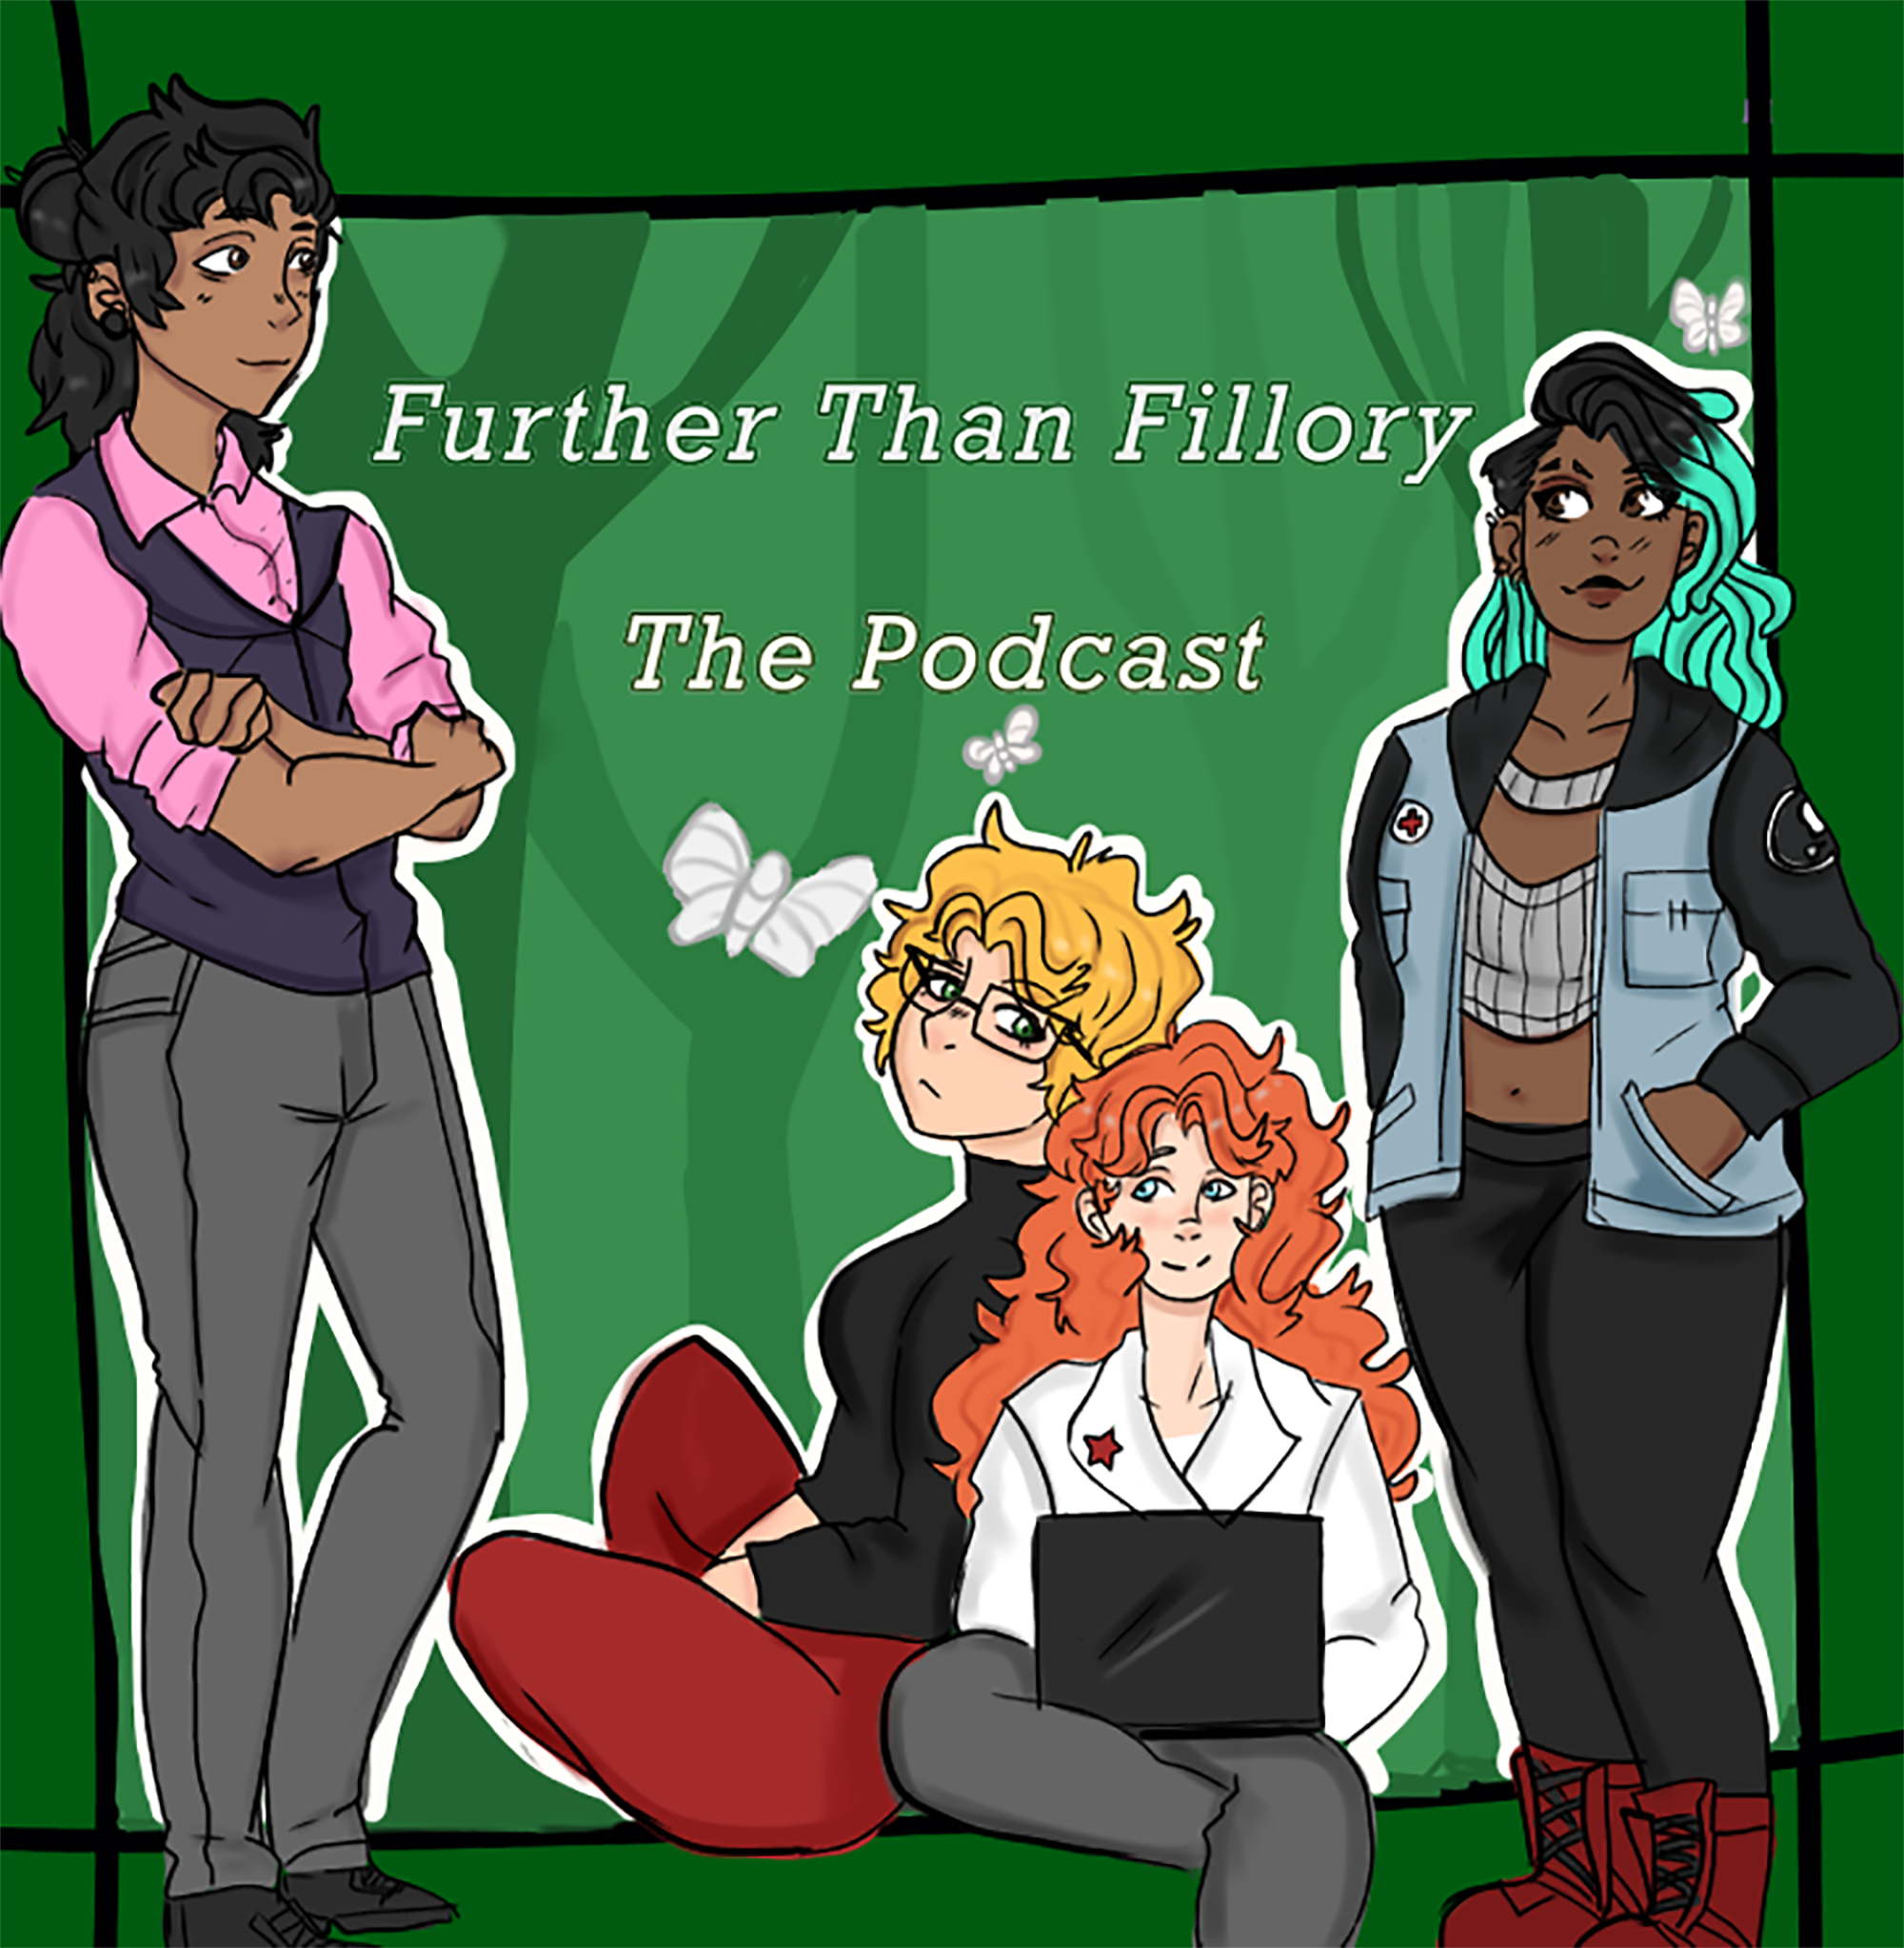 Further Than Fillory: The Podcast show image